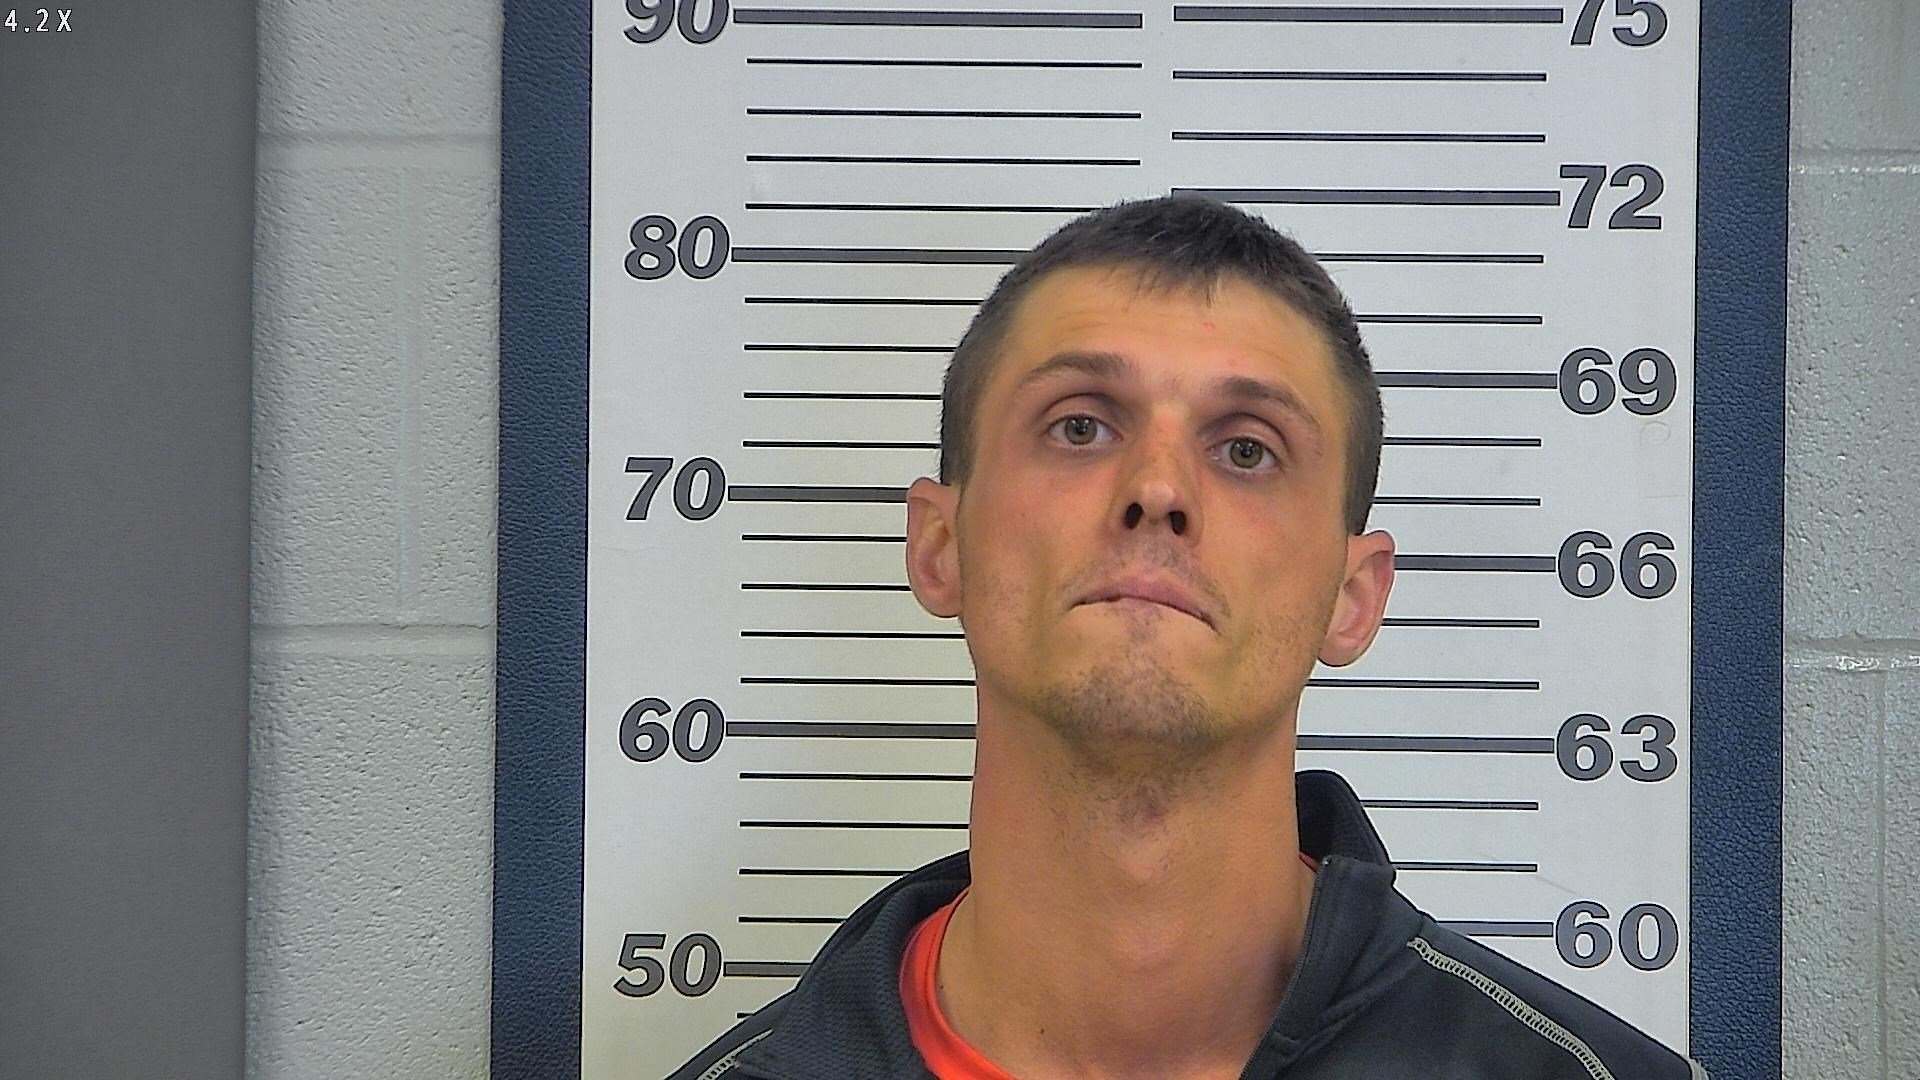 Deric R. Wagner, 32, of Platte City faces second-degree burglary charges. (Platte County Jail)